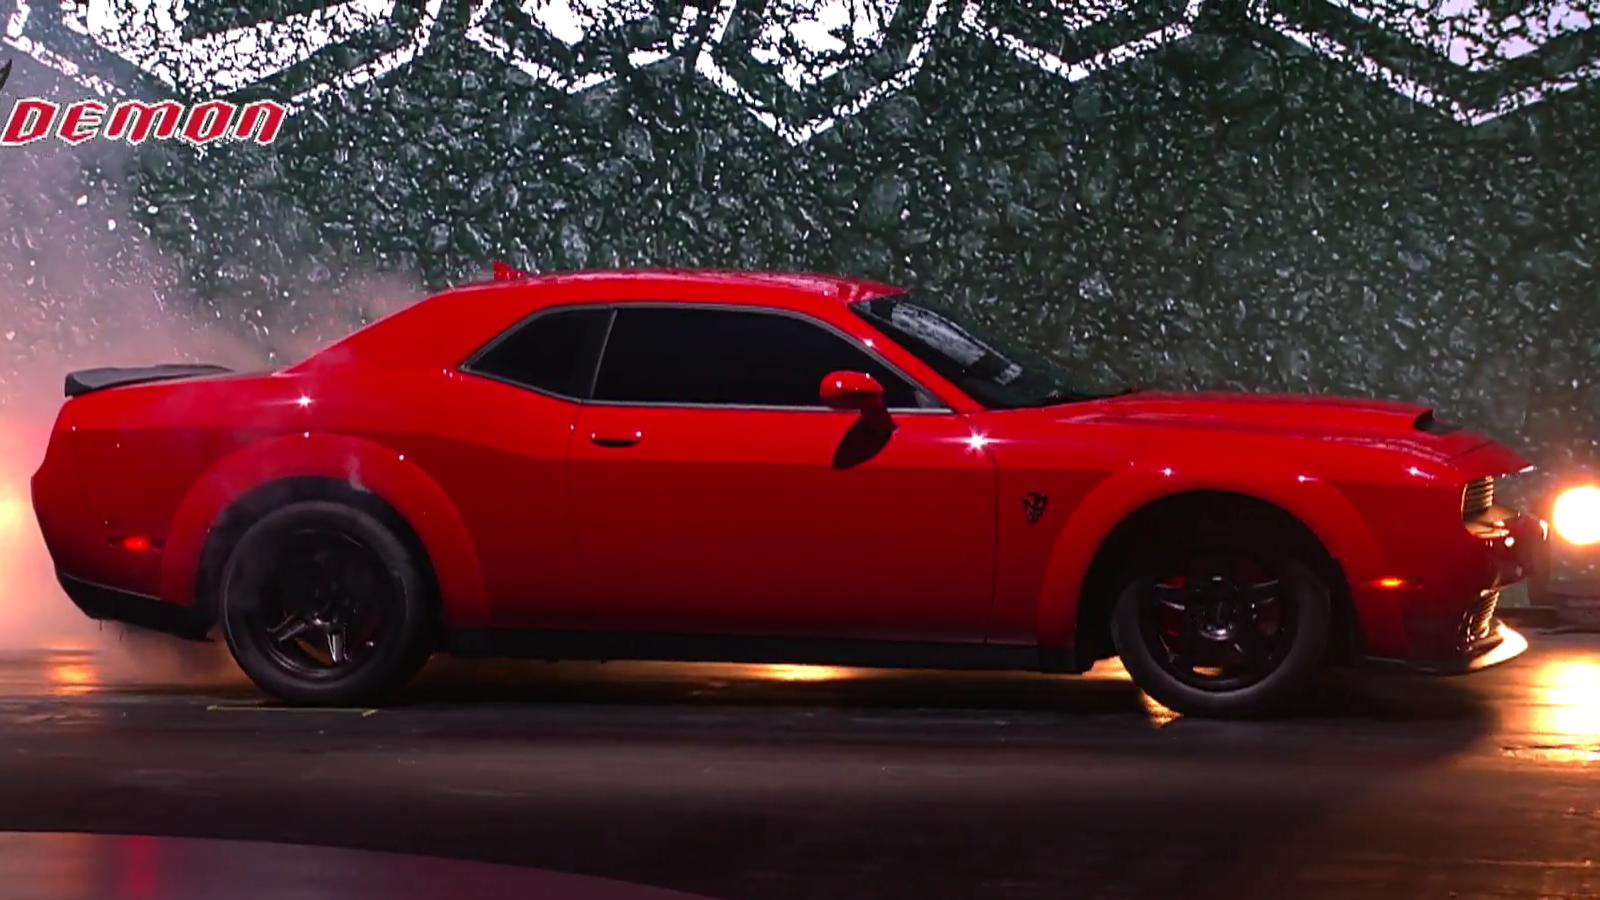 The 2018 dodge challenger srt demon is officially an 840 hp drag strip nightmare